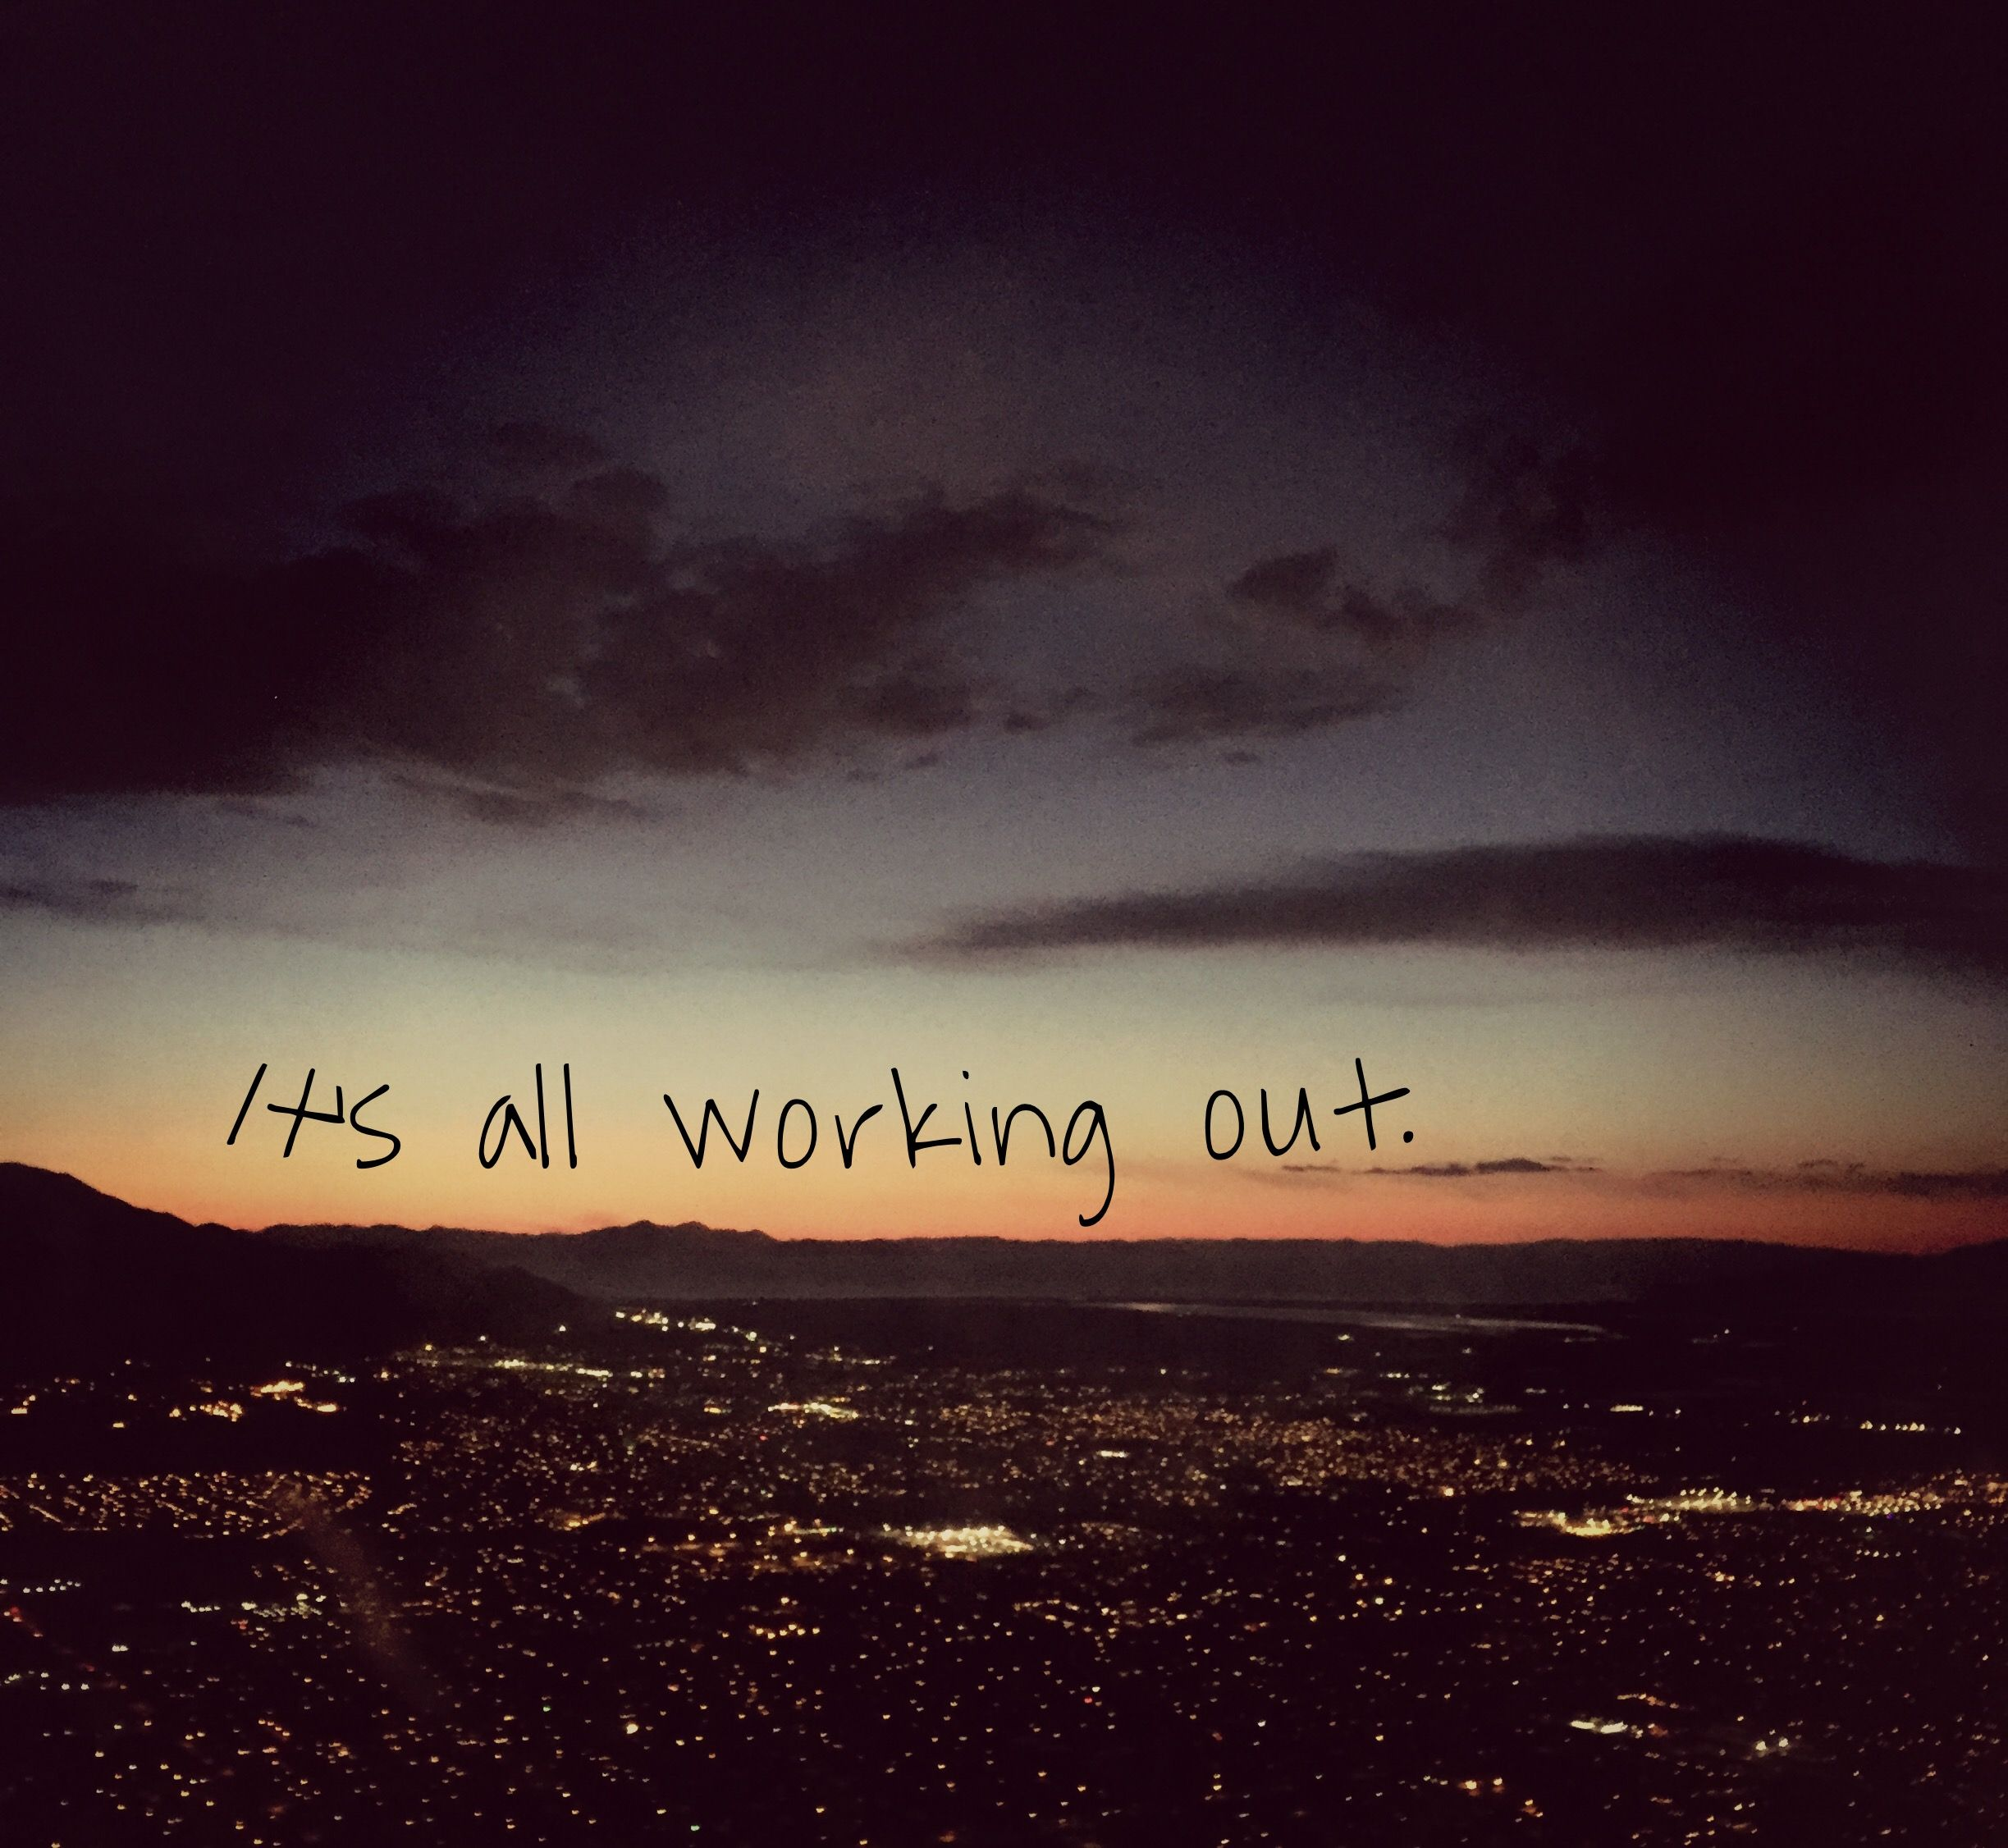 It's all working out quote